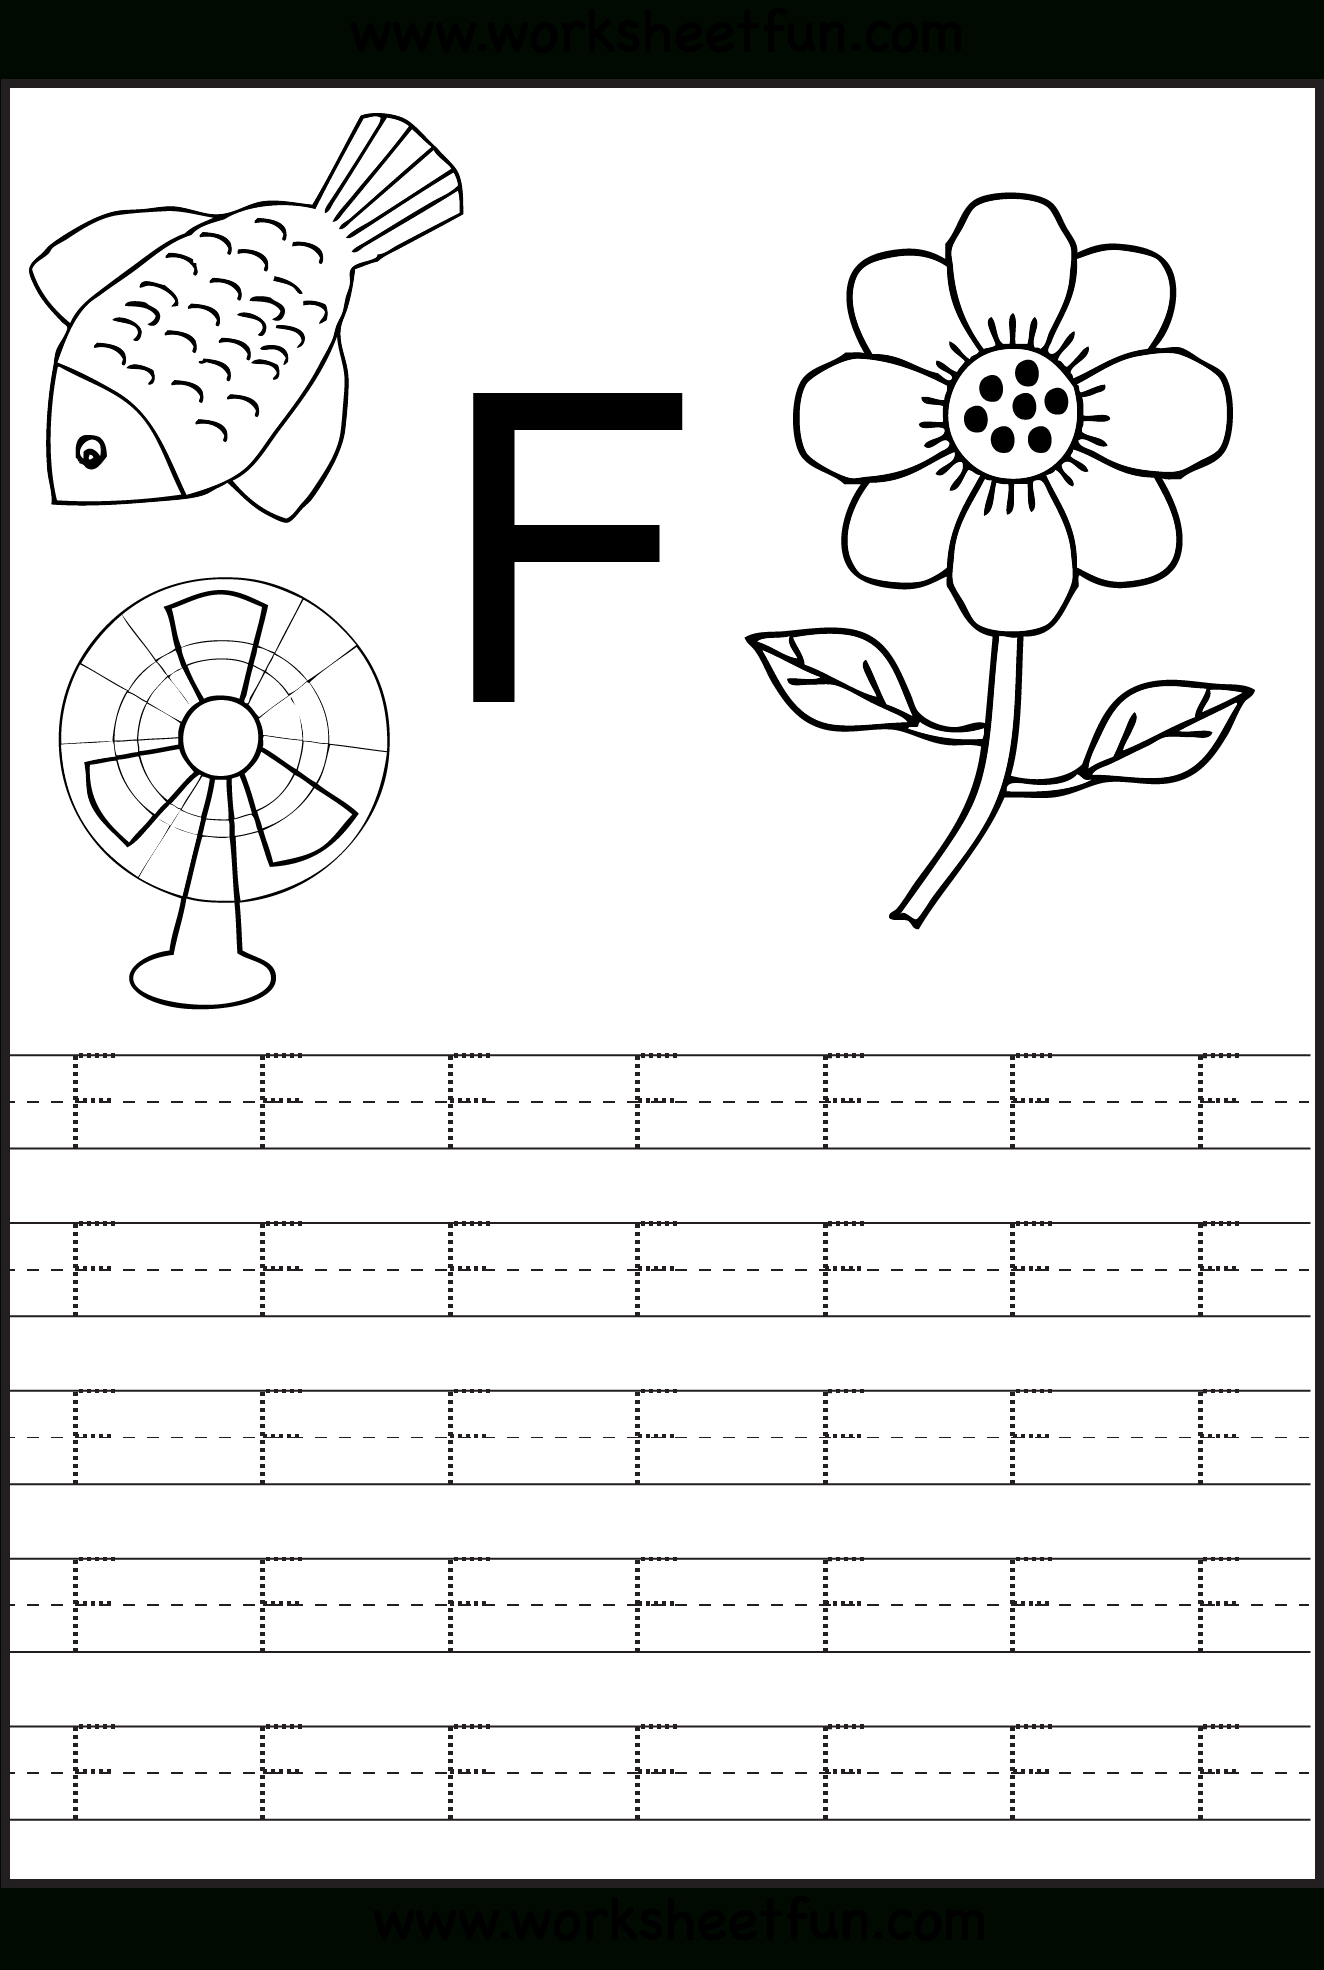 Letter F Worksheets | H3Dwallpapers - High Definition Free regarding Letter F Worksheets For 1St Grade